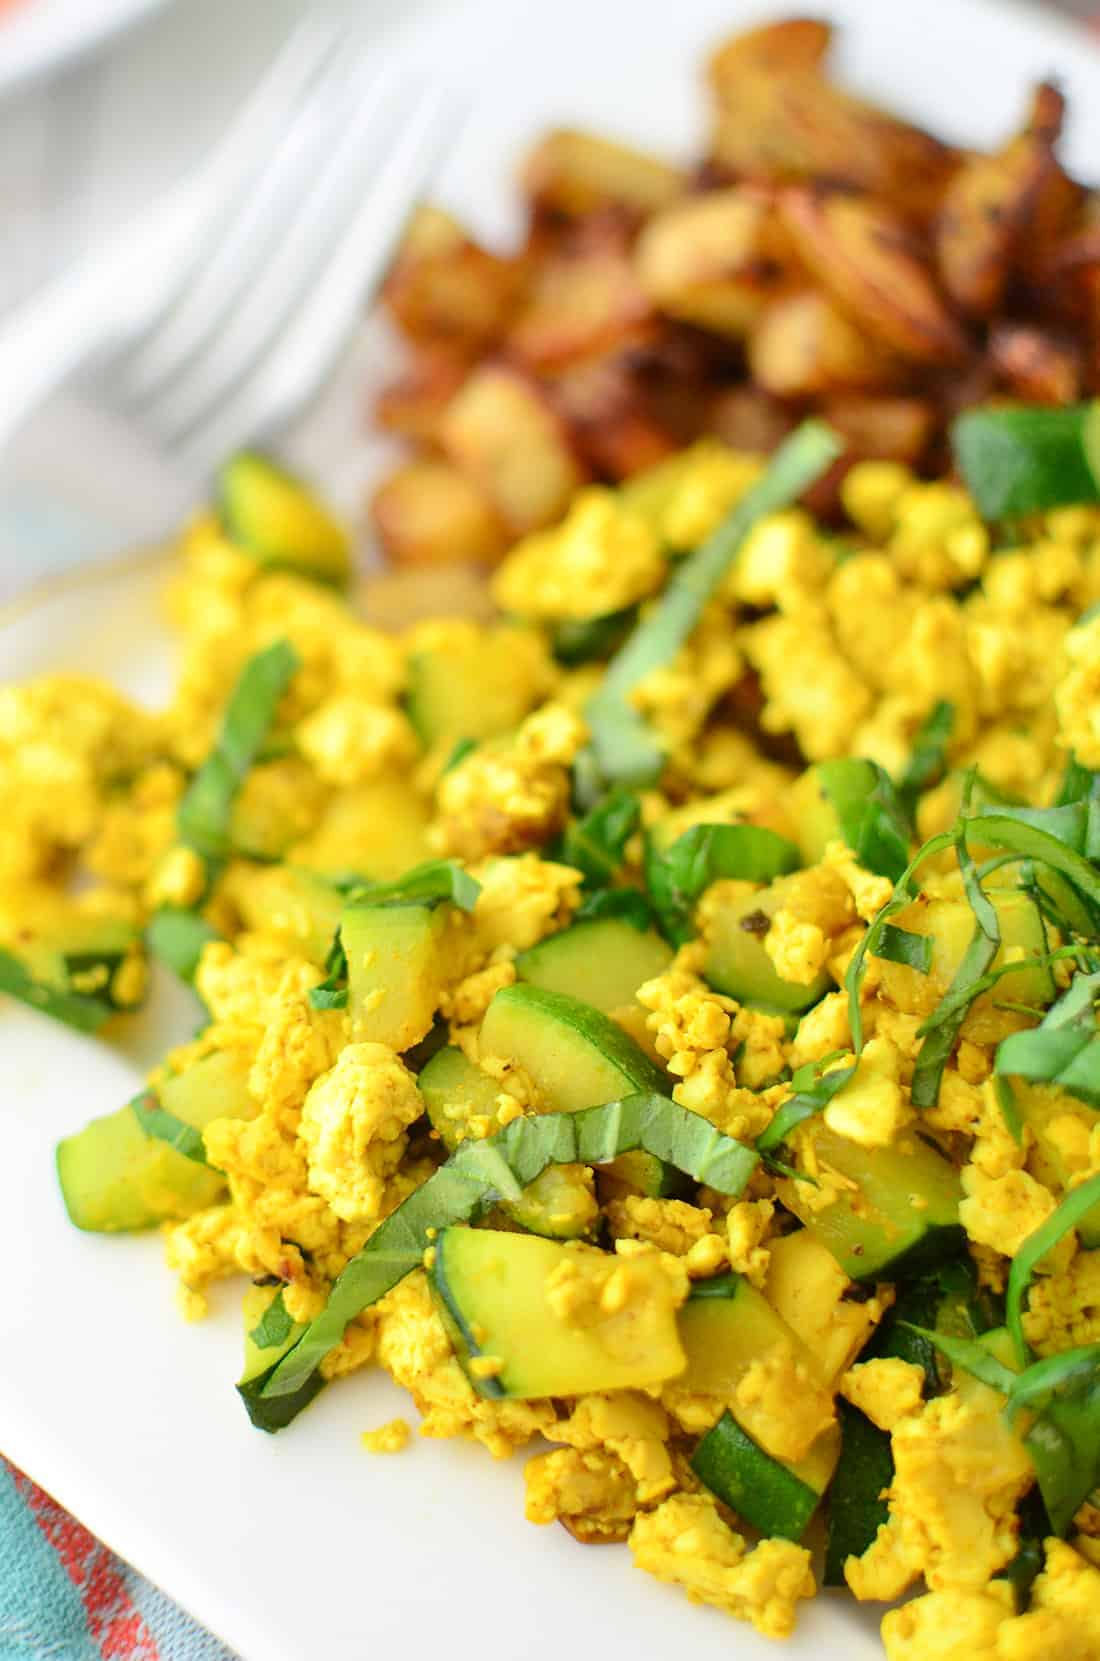 Zucchini and Basil Scramble! A healthy, cholesterol free breakfast option. If you haven't tried tofu scramble before, you're in for a treat! High protein and taste just a lot like eggs! | www.delishknowledge.com